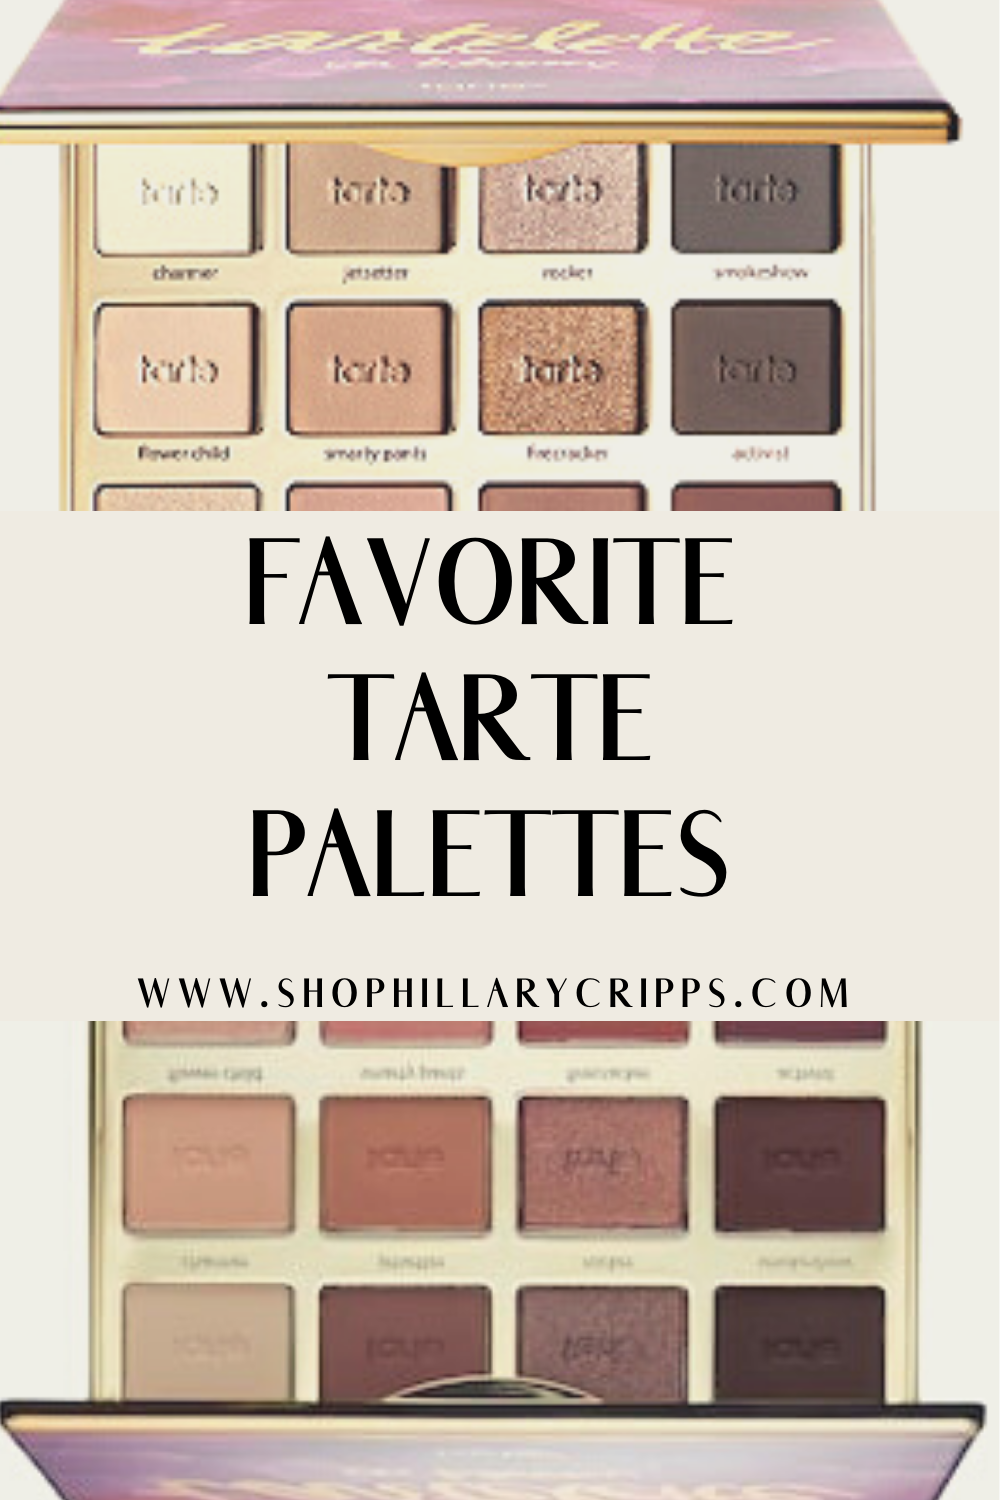 Everyone needs these Tarte palettes for the best looks ...